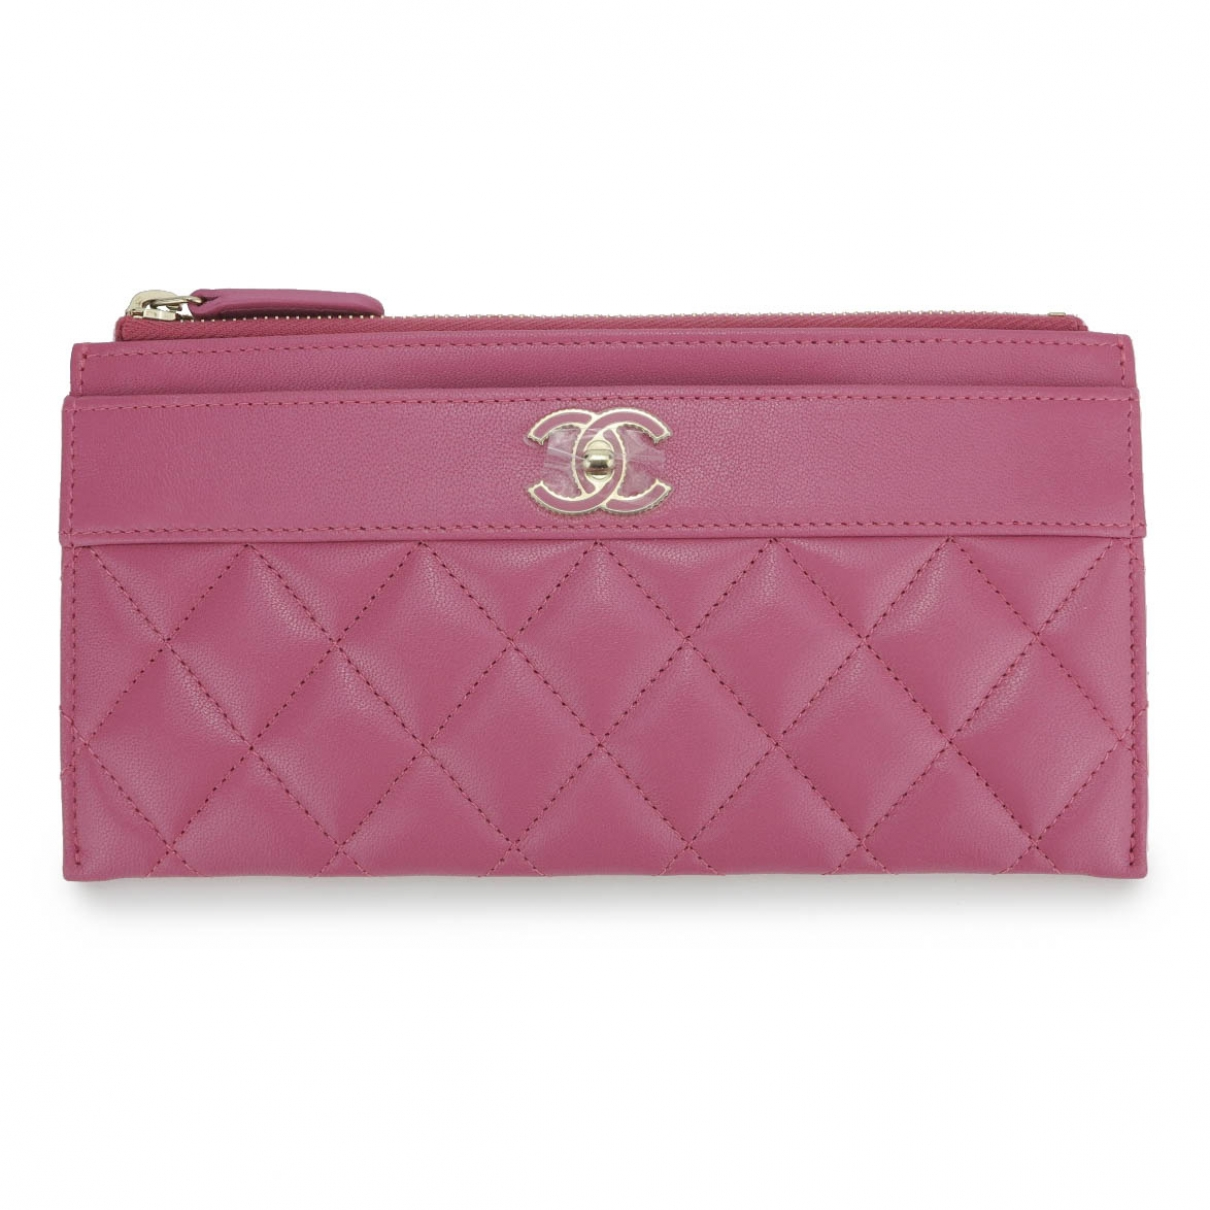 Chanel Timeless/Classique Pink Leather Purses, wallet & cases for Women \N